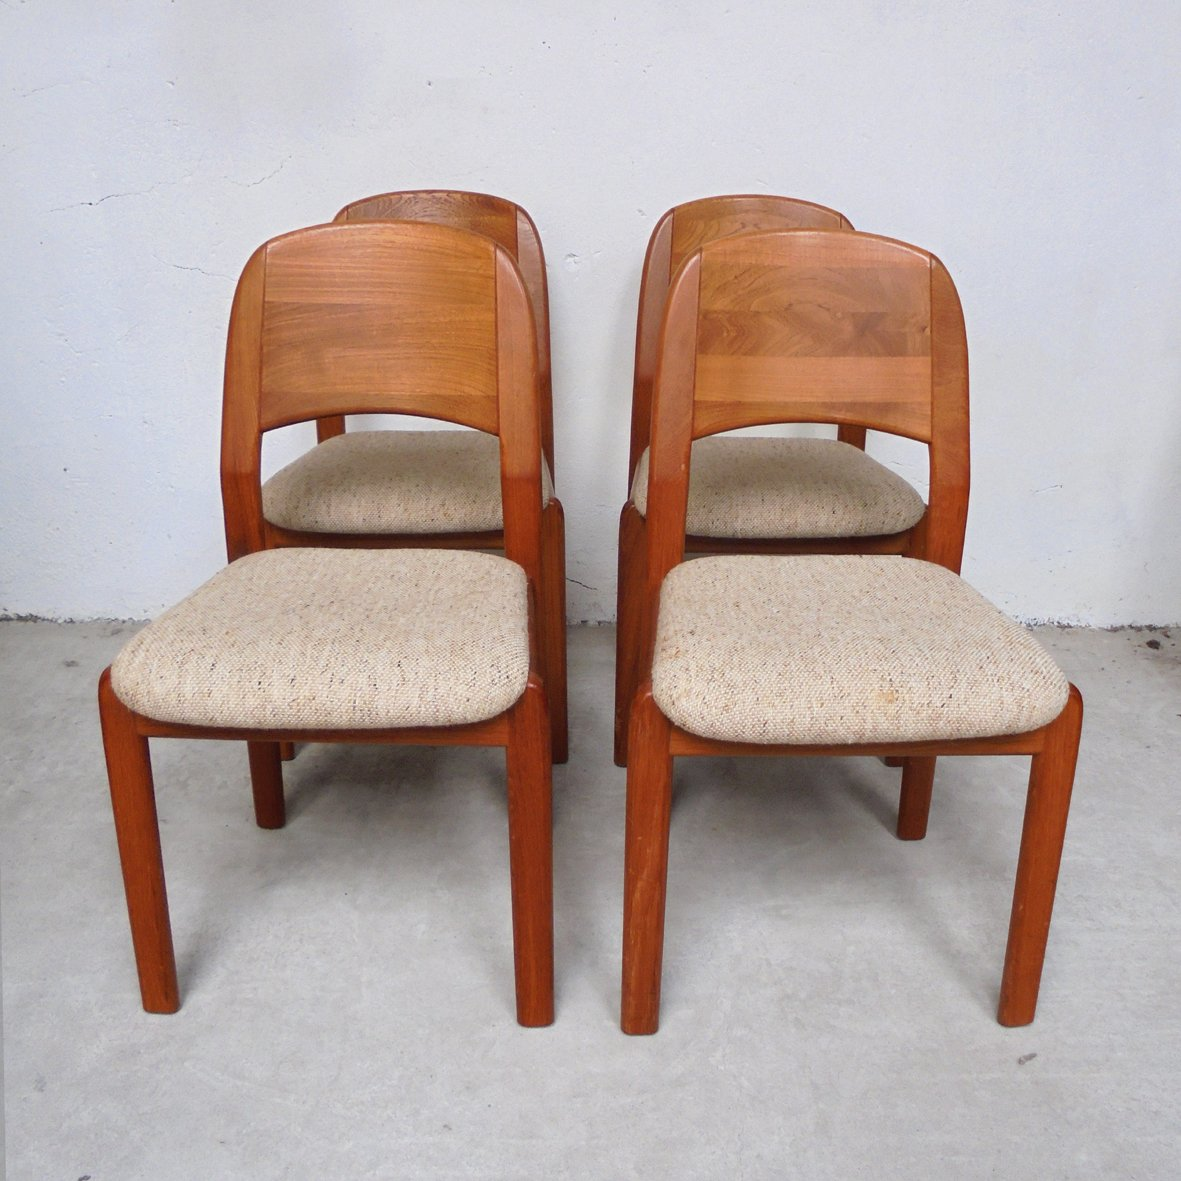 Danish Teak Dining Chairs Danish Teak Dining Chairs From Dyrlund 1960s Set Of 4